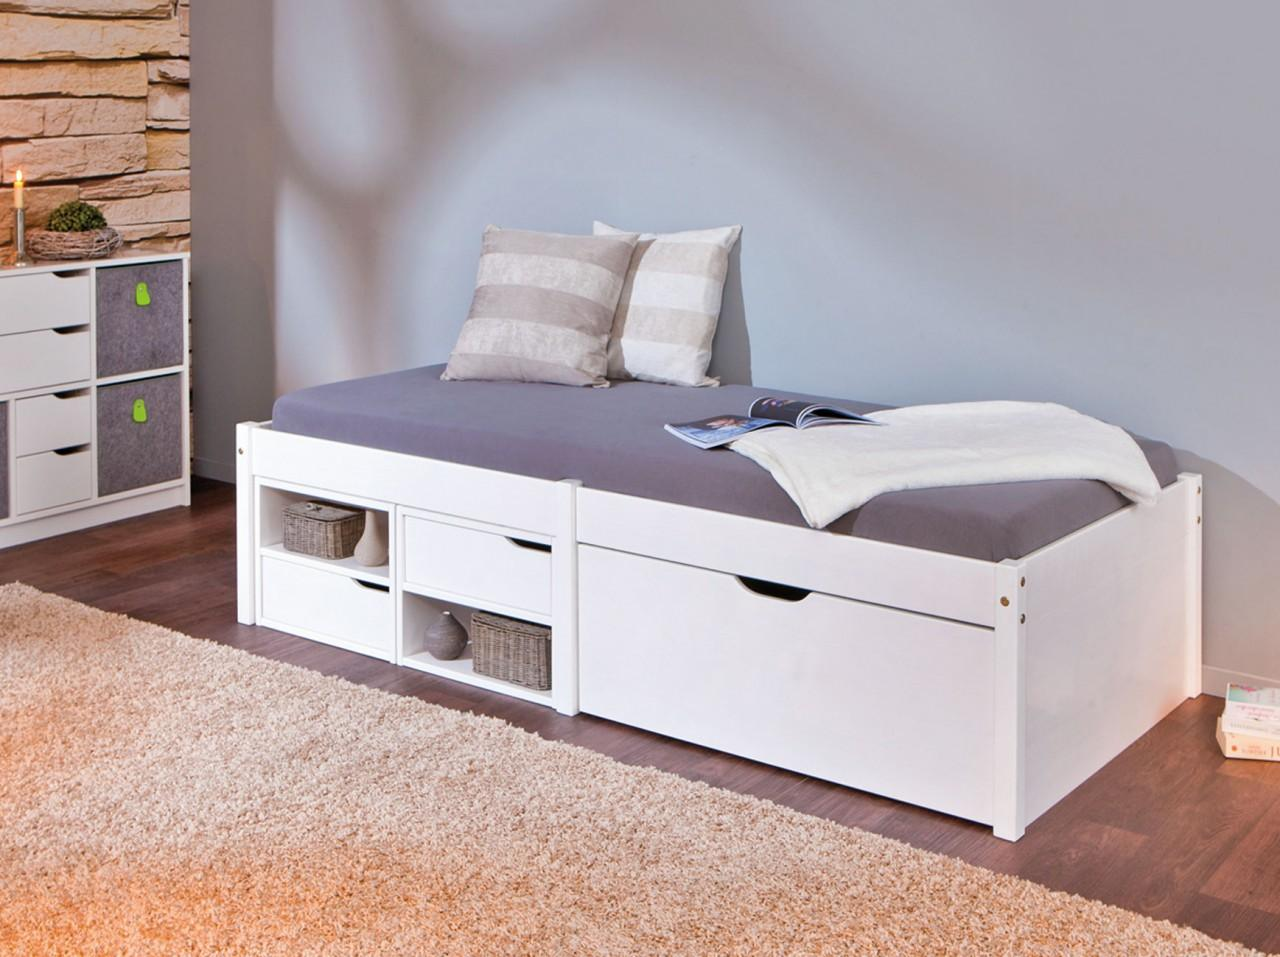 kinderbett farum 90 x 200 kiefer massiv wei lackiert mit schubladen. Black Bedroom Furniture Sets. Home Design Ideas